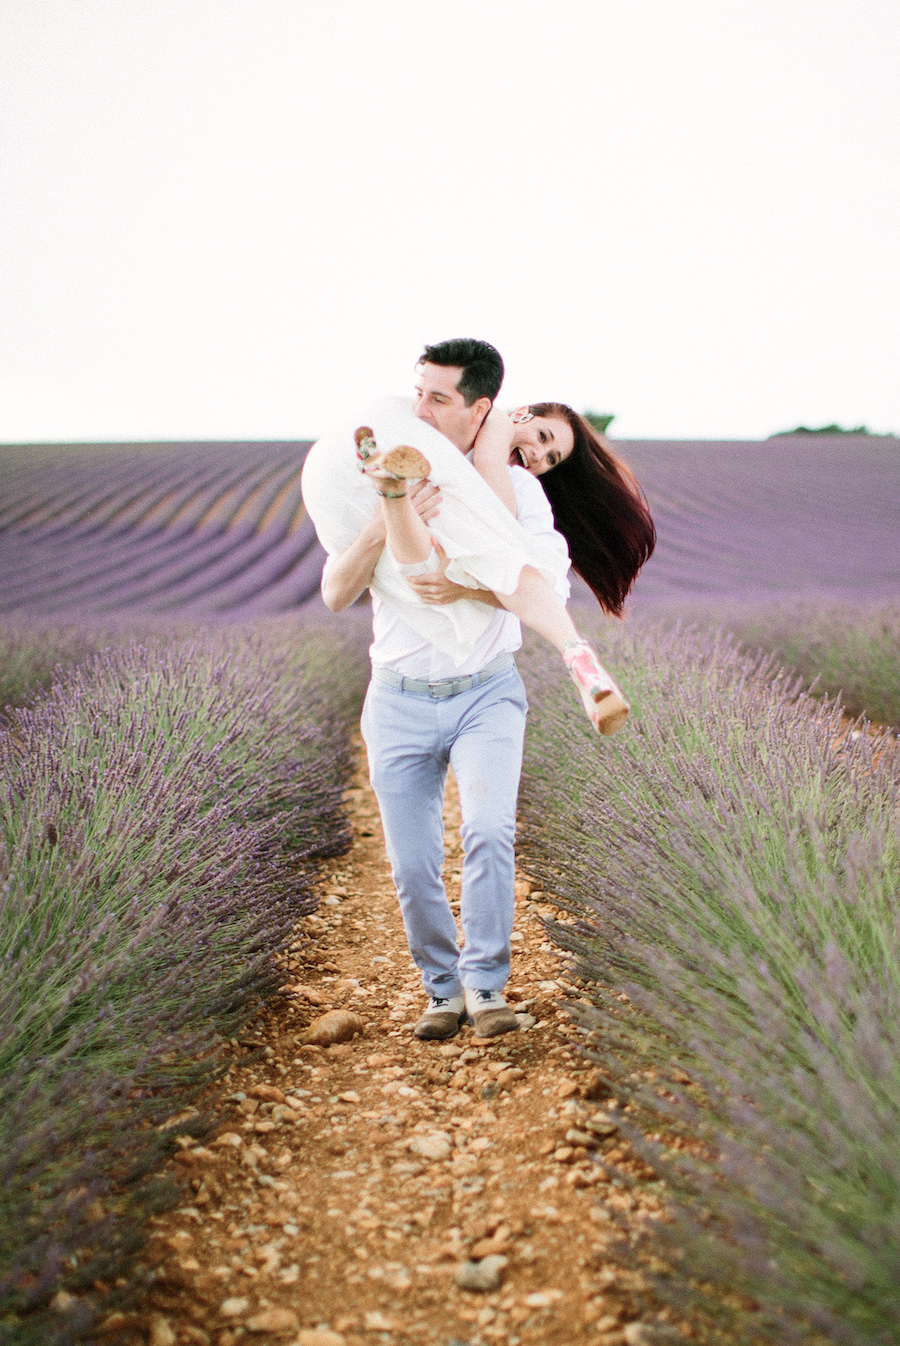 saya-photography-pre-wedding-provence-lavander-field-30.jpg